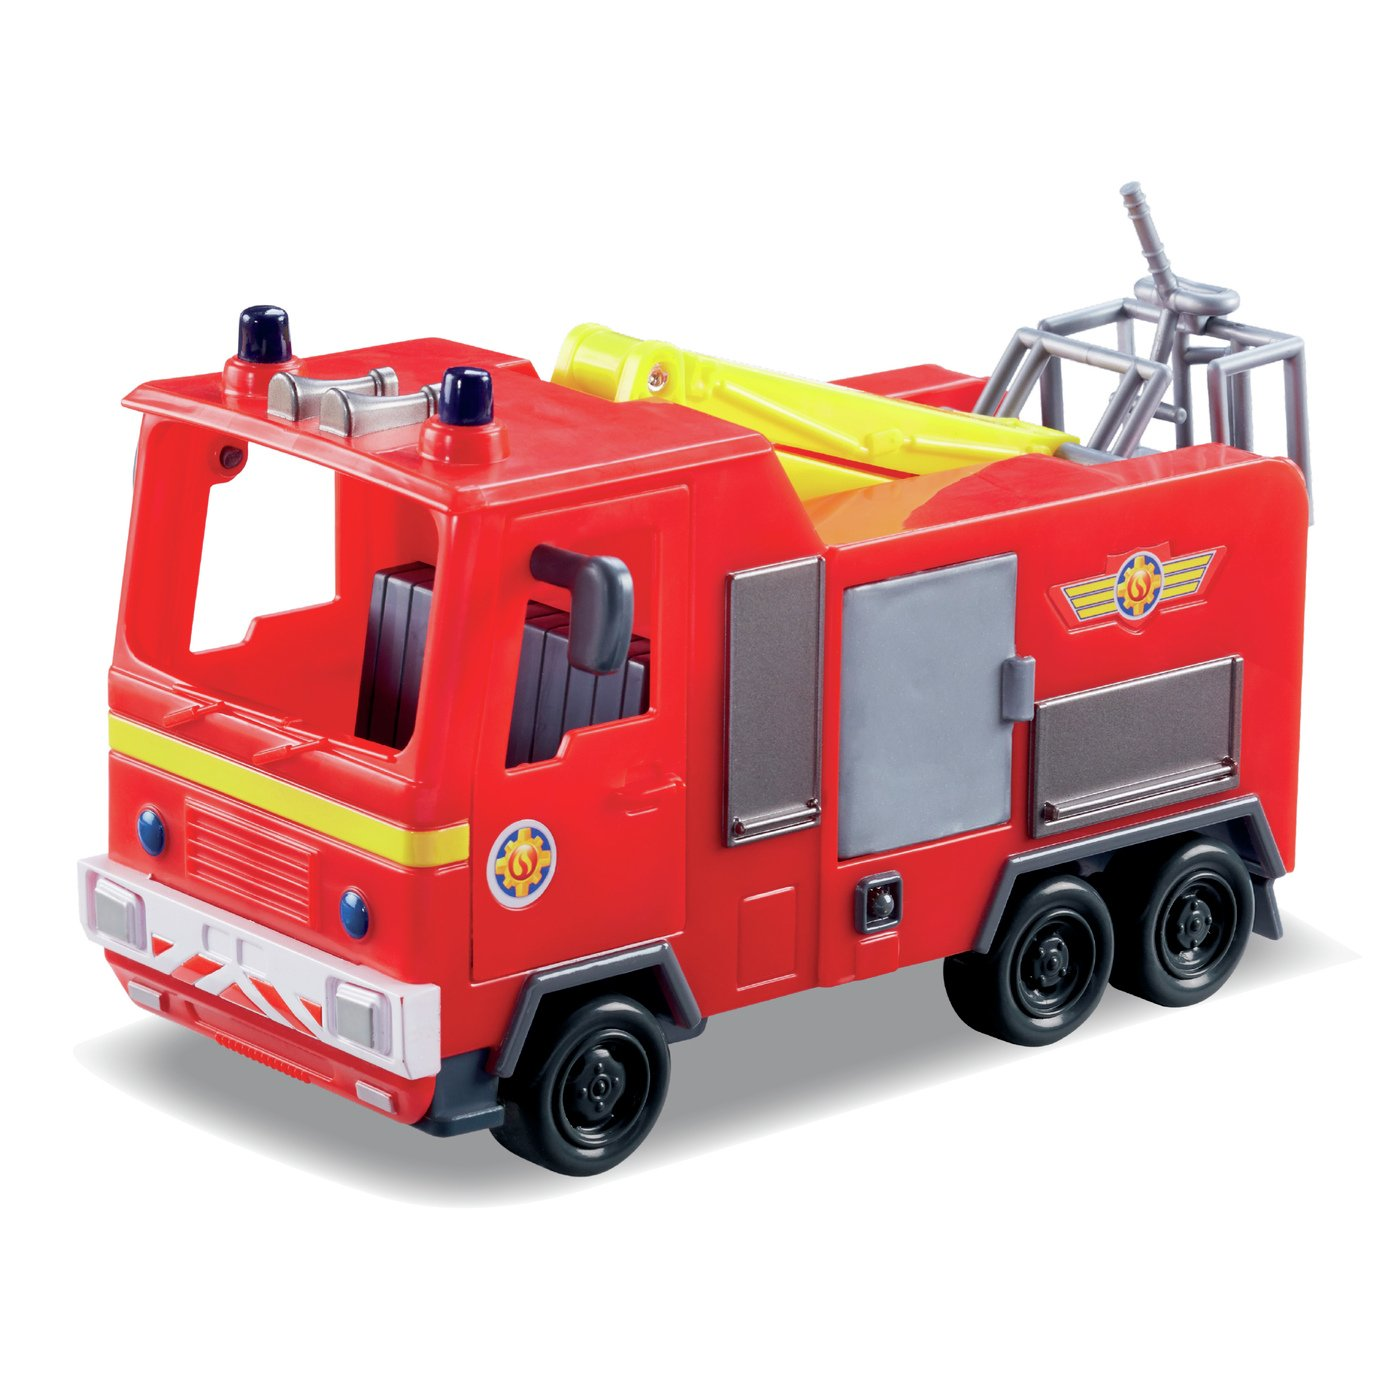 Image of Fireman Sam - Jupiter Fire Engine